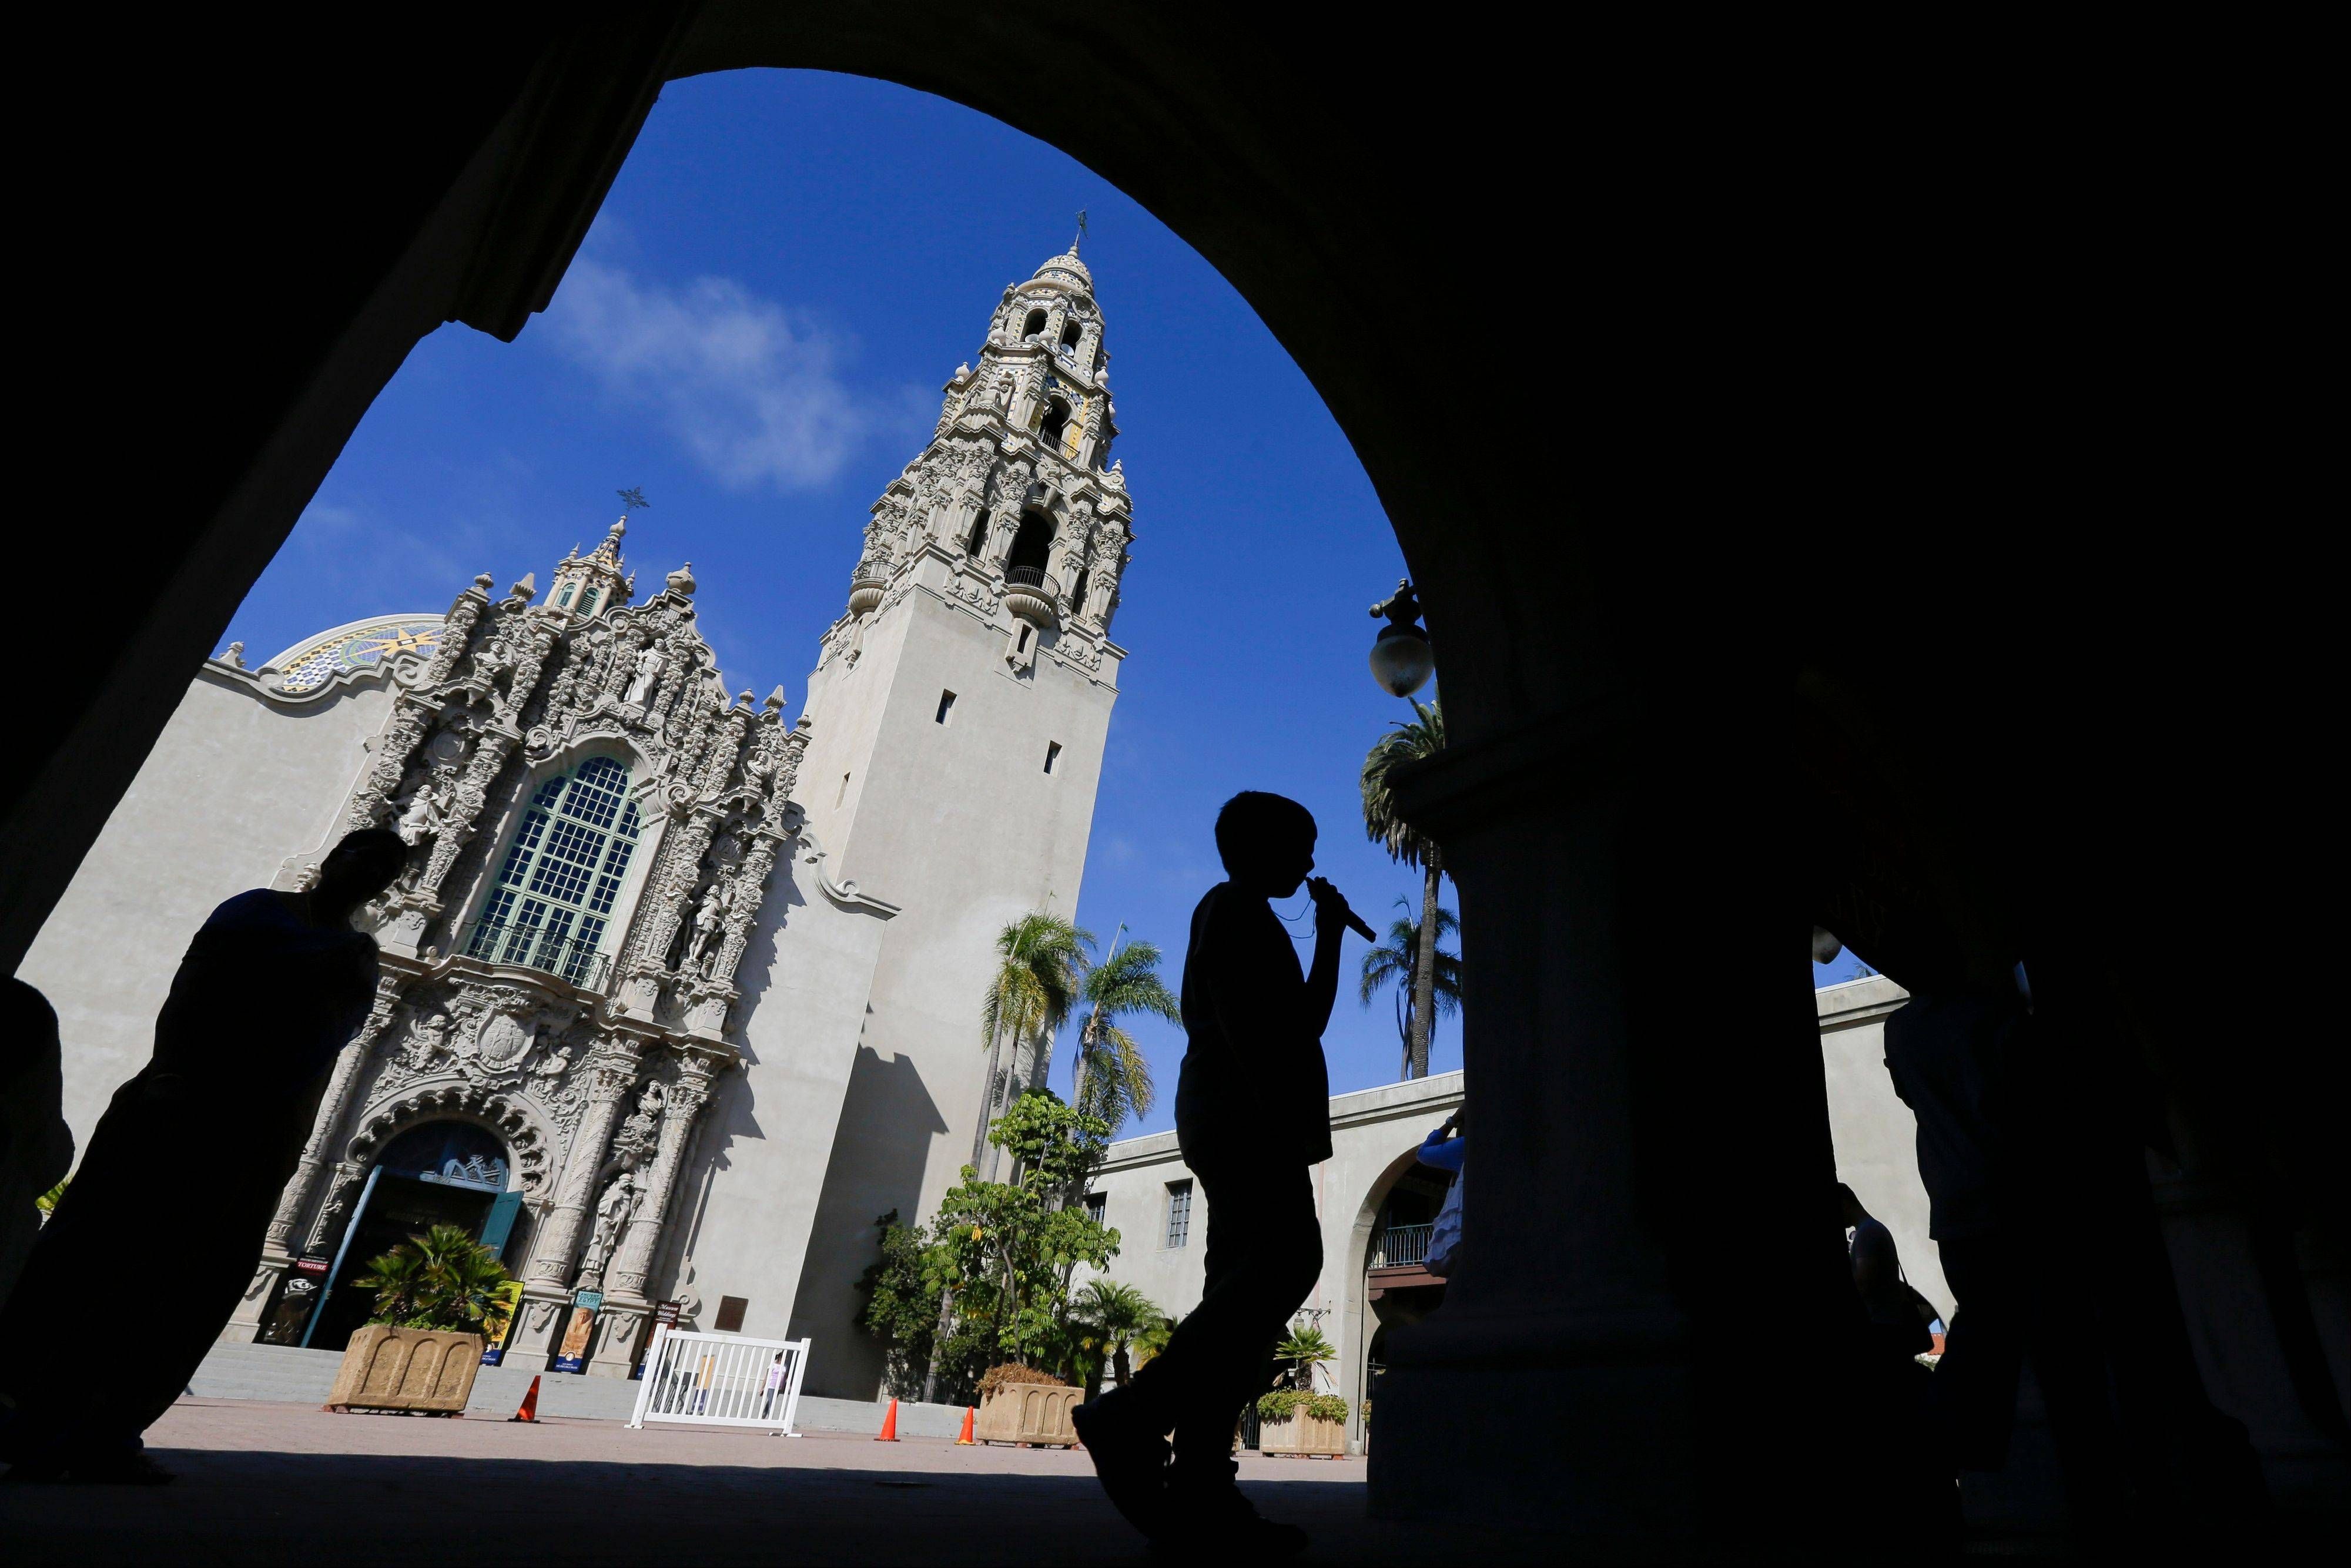 Balboa Park will be marking its 100th anniversary in 2015 with a host of festivities, although any day is worth a visit to the 1,200-acre urban oasis that rivals New York's Central Park and is home to the San Diego Zoo.